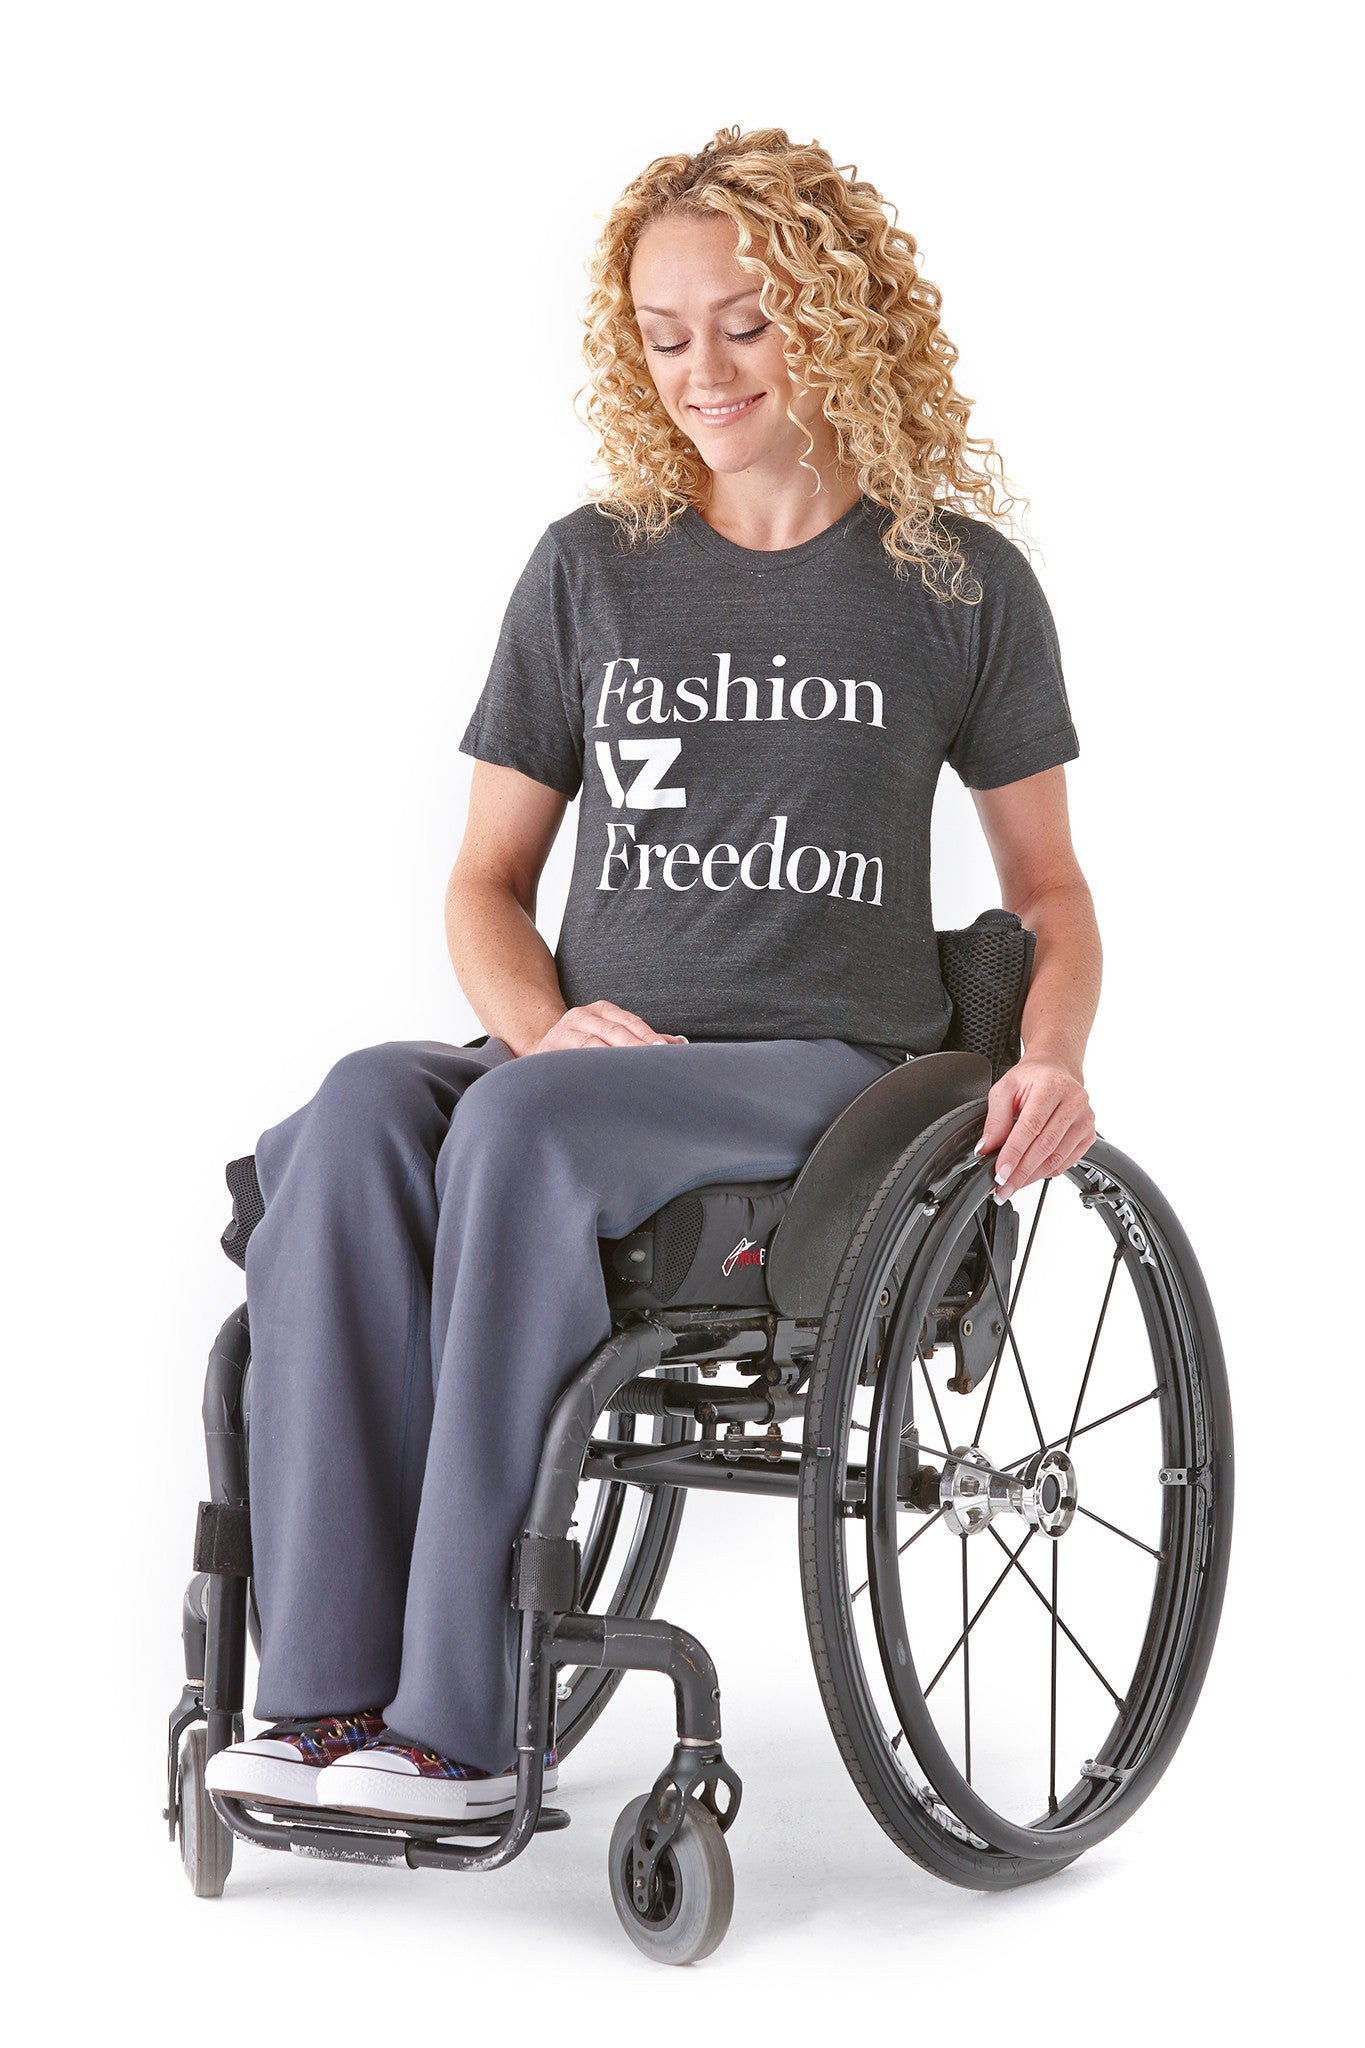 Straight Leg Sweatpant for women designed for wheelchair users